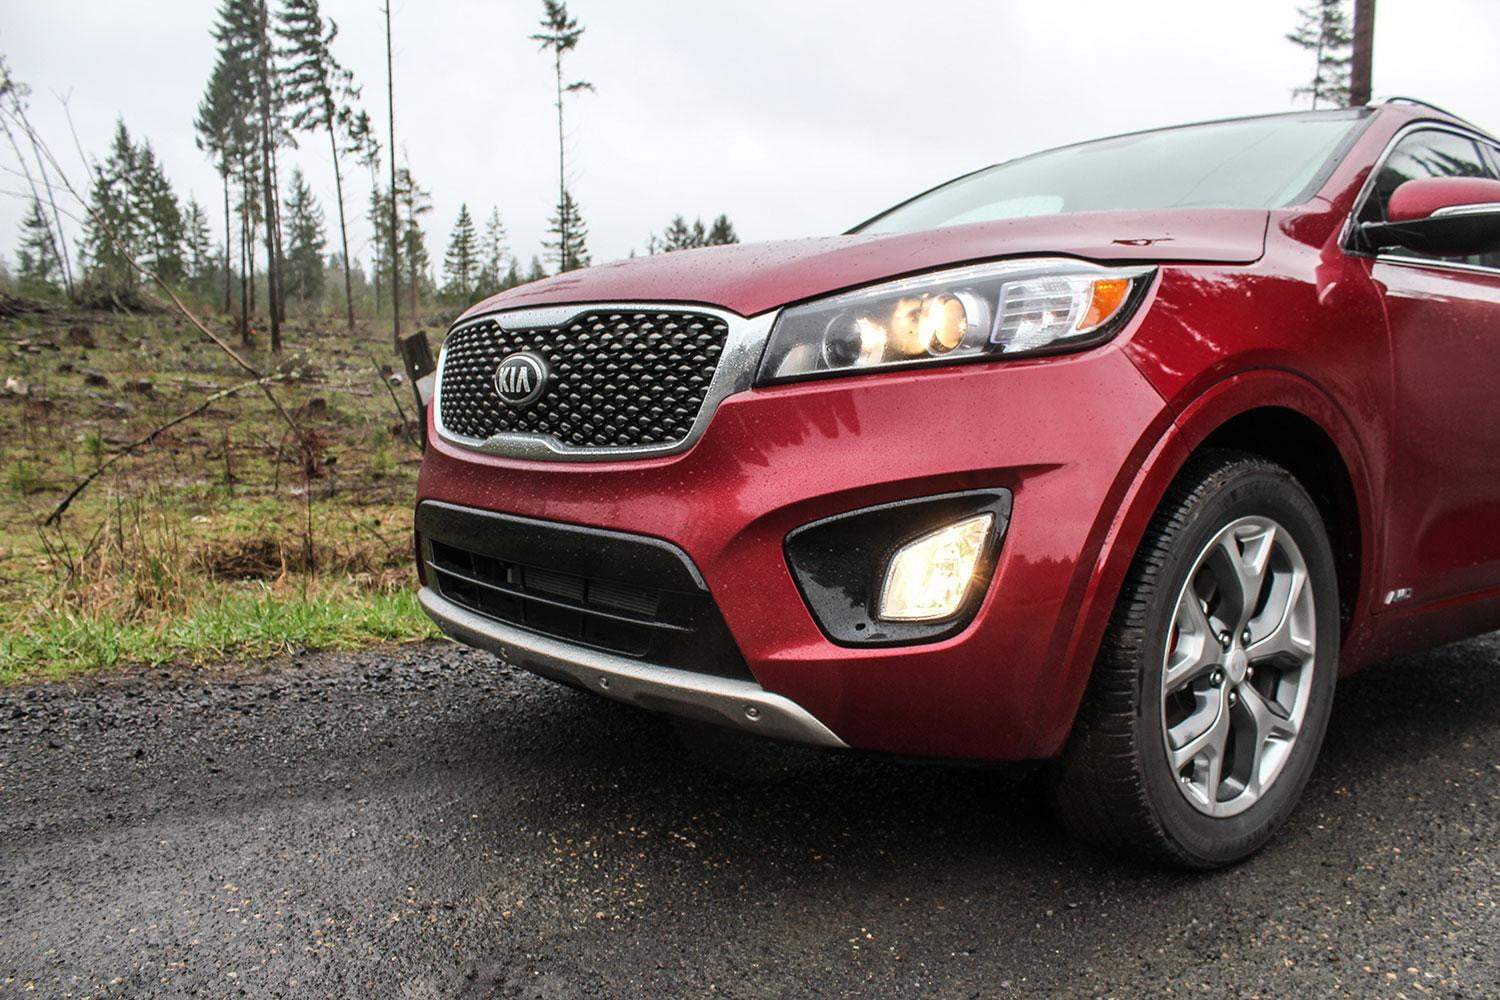 Is the 2016 Kia Sorrento the best crossover on the market